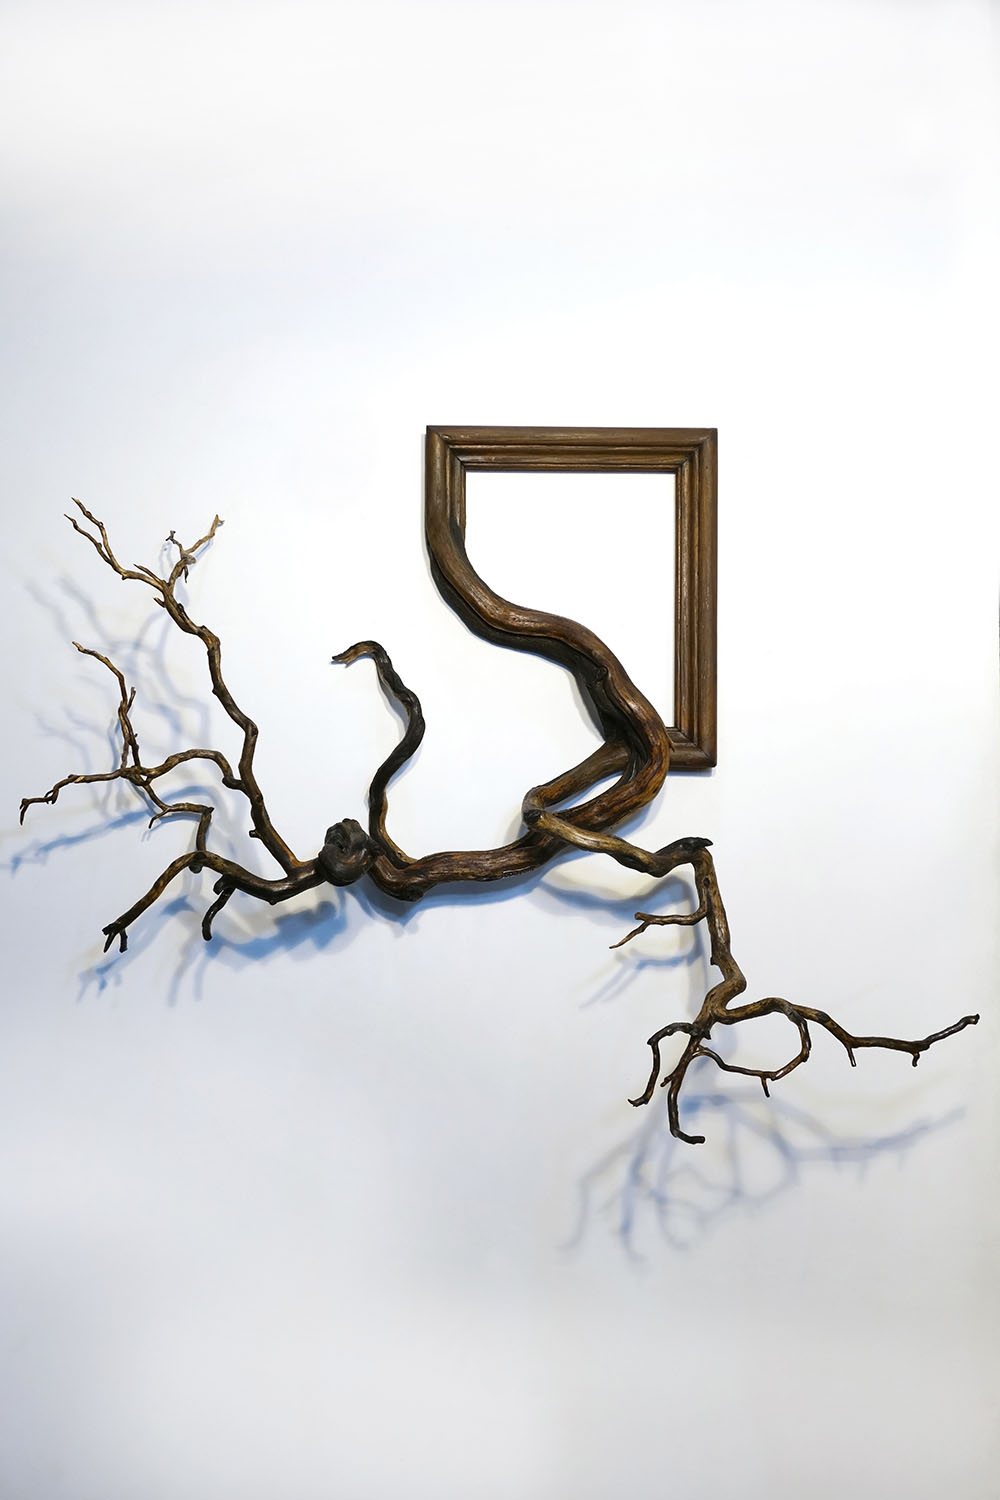 New Fusion Frames By Darryl Cox Fuse Gnarled Tree Roots